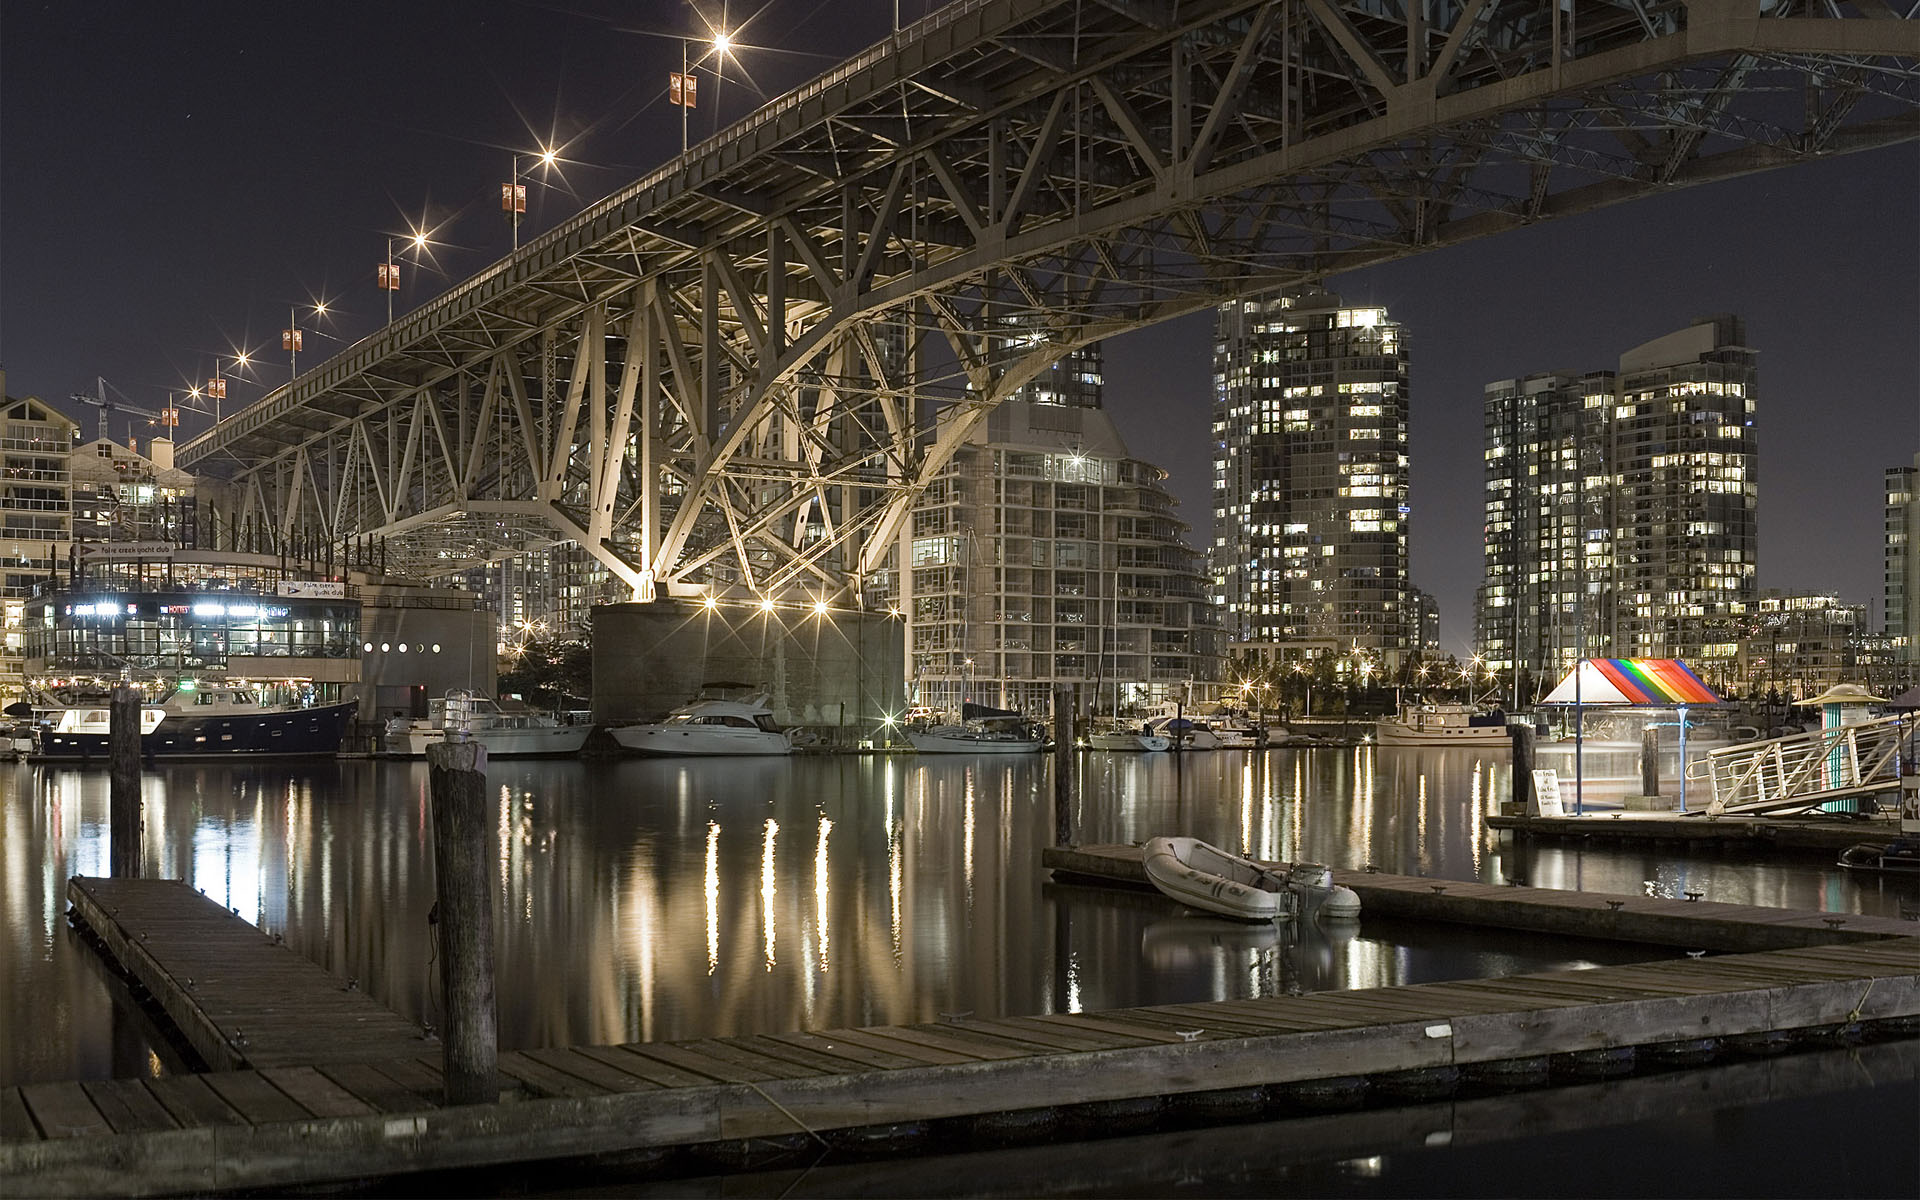 Granville Bridge 909.11 Kb